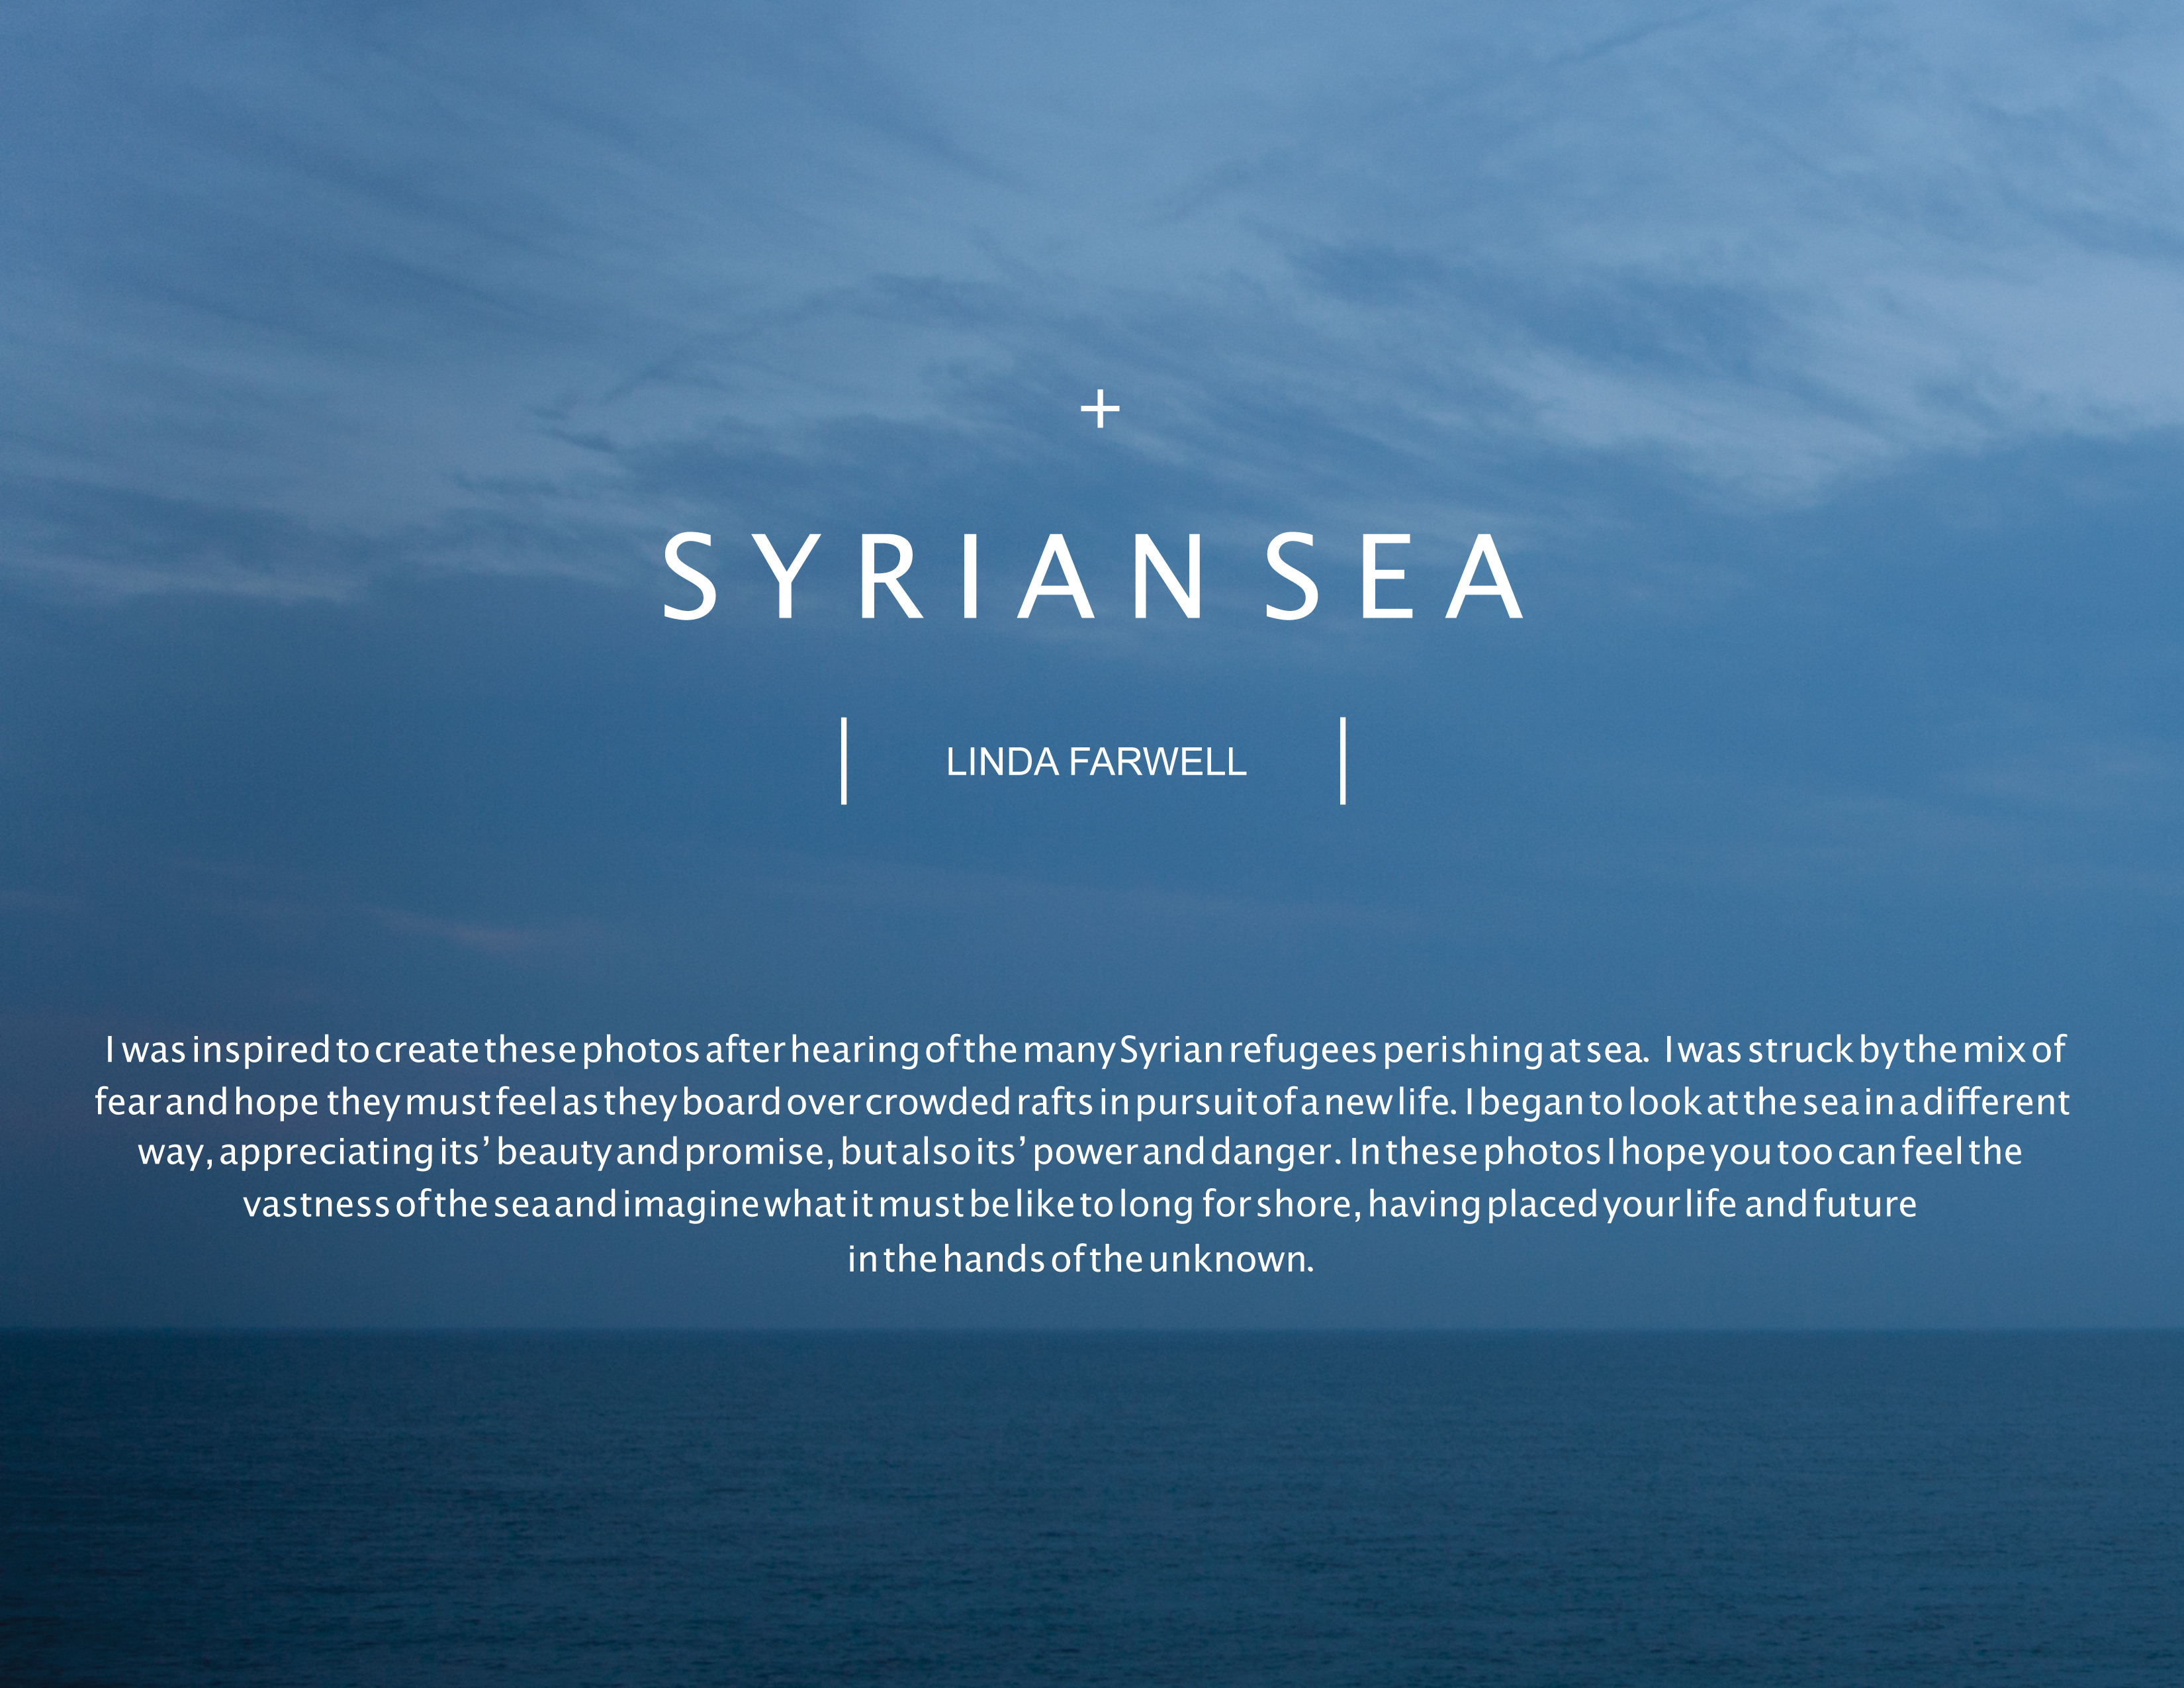 Syrian Sea Show at Gallery 505